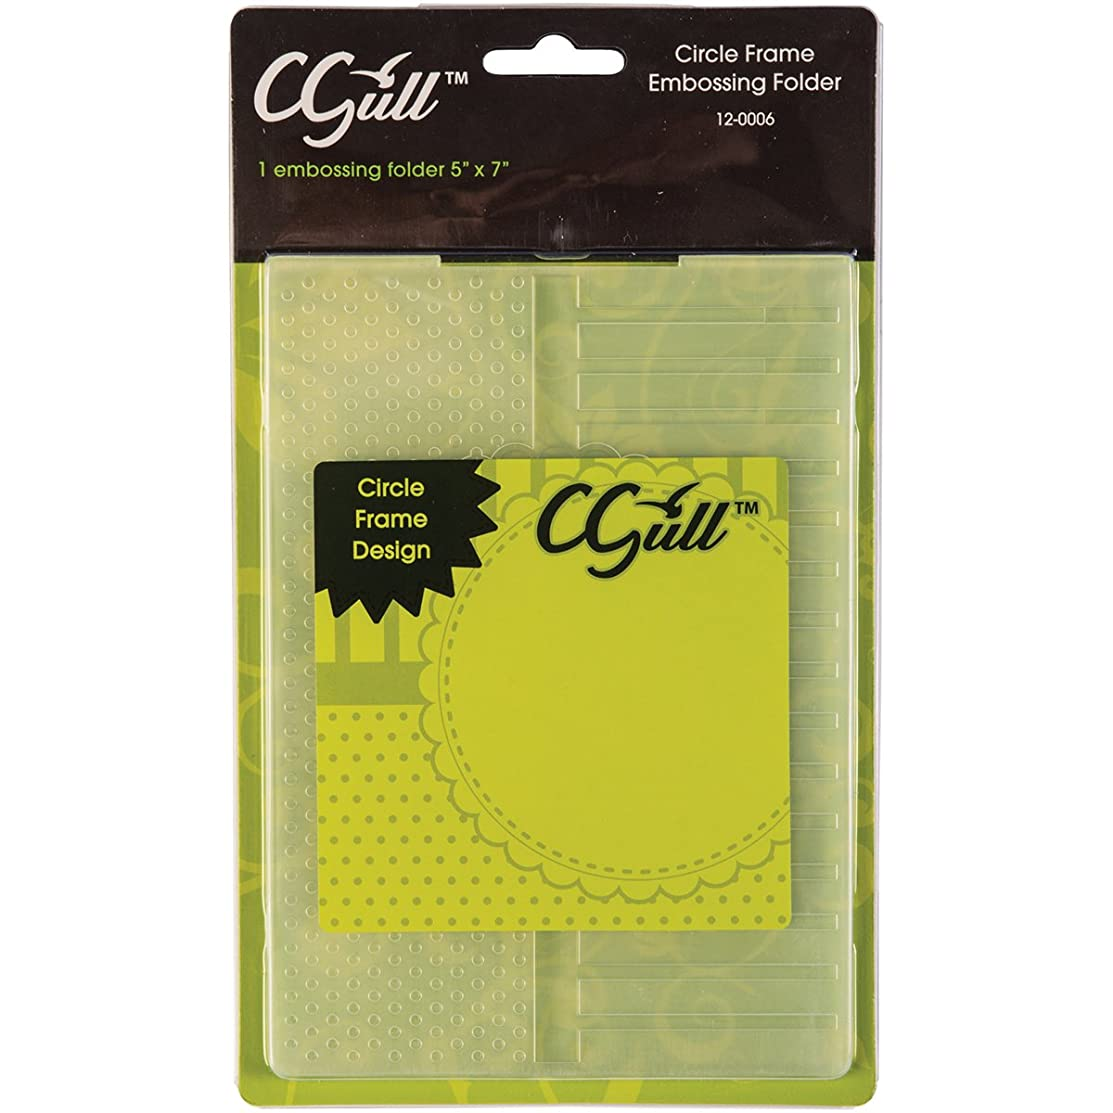 CGull 12-0006 Embossing Circle Frame Folder, 5 by 7-Inch